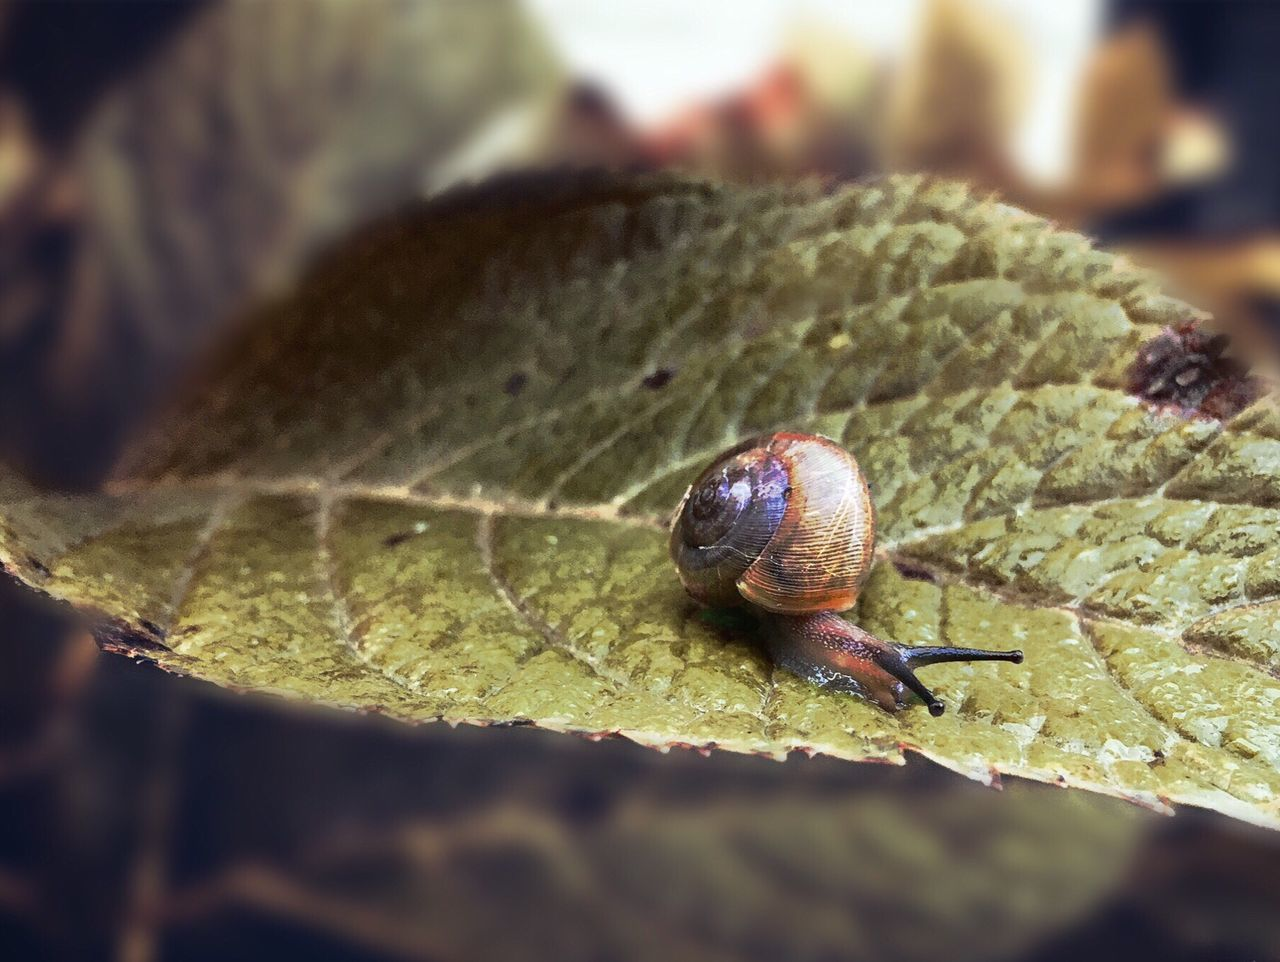 animal wildlife, animal, animal themes, one animal, invertebrate, close-up, animals in the wild, plant part, leaf, gastropod, mollusk, selective focus, no people, snail, insect, nature, green color, shell, animal body part, day, small